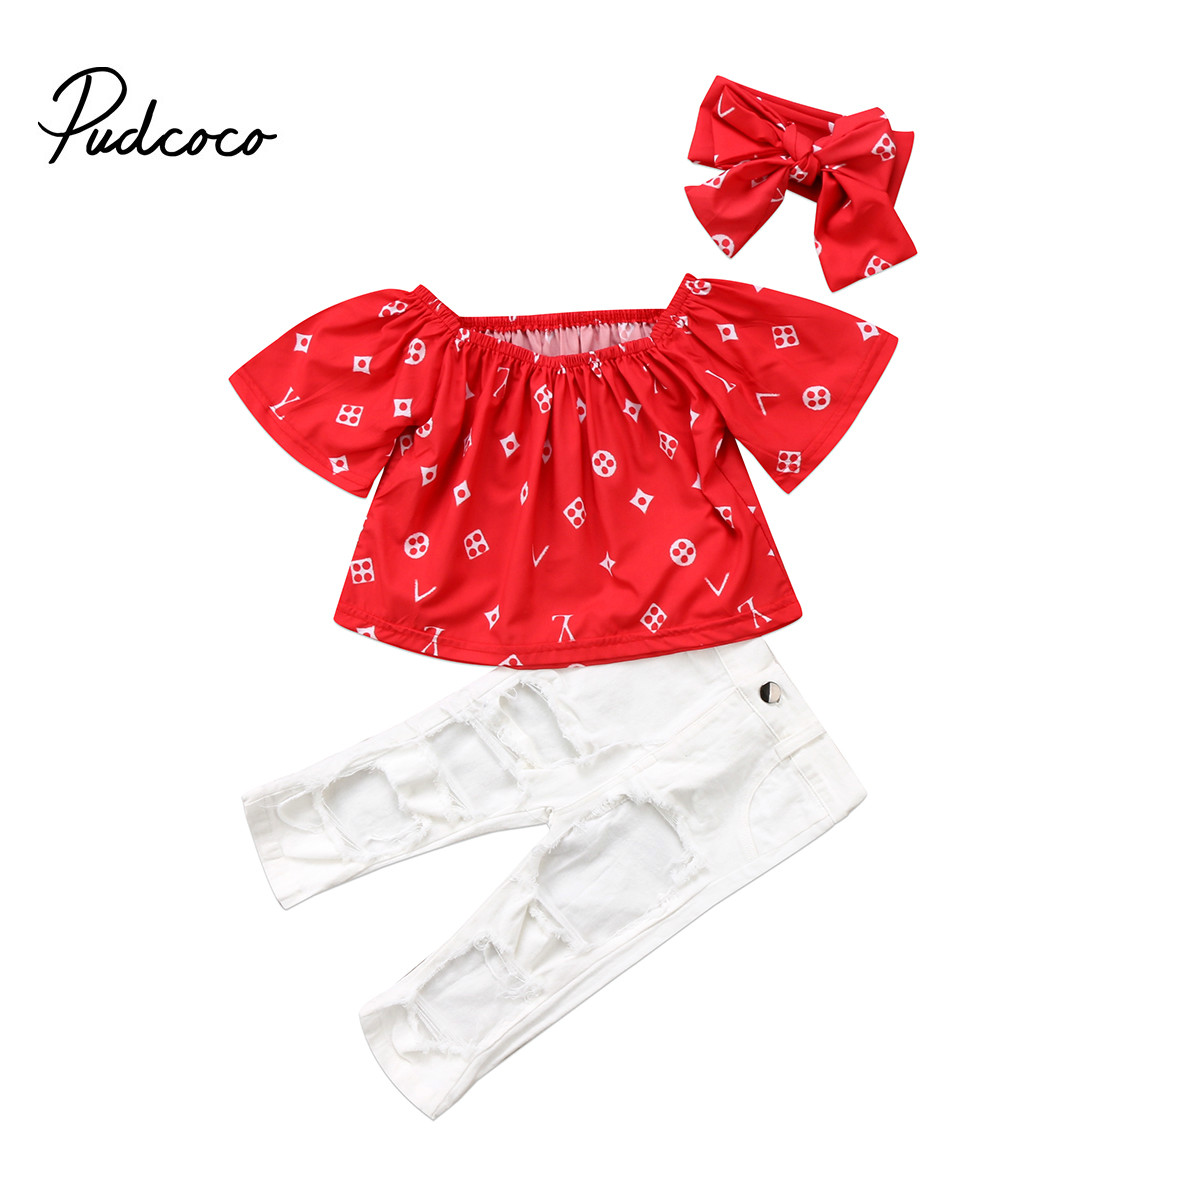 3PCS Newborn Baby Kid Girls Xmas Party Outfits Off Shoulder Red Shirt Tops+White Hole Pants+Headband Girls Clothes3PCS Newborn Baby Kid Girls Xmas Party Outfits Off Shoulder Red Shirt Tops+White Hole Pants+Headband Girls Clothes